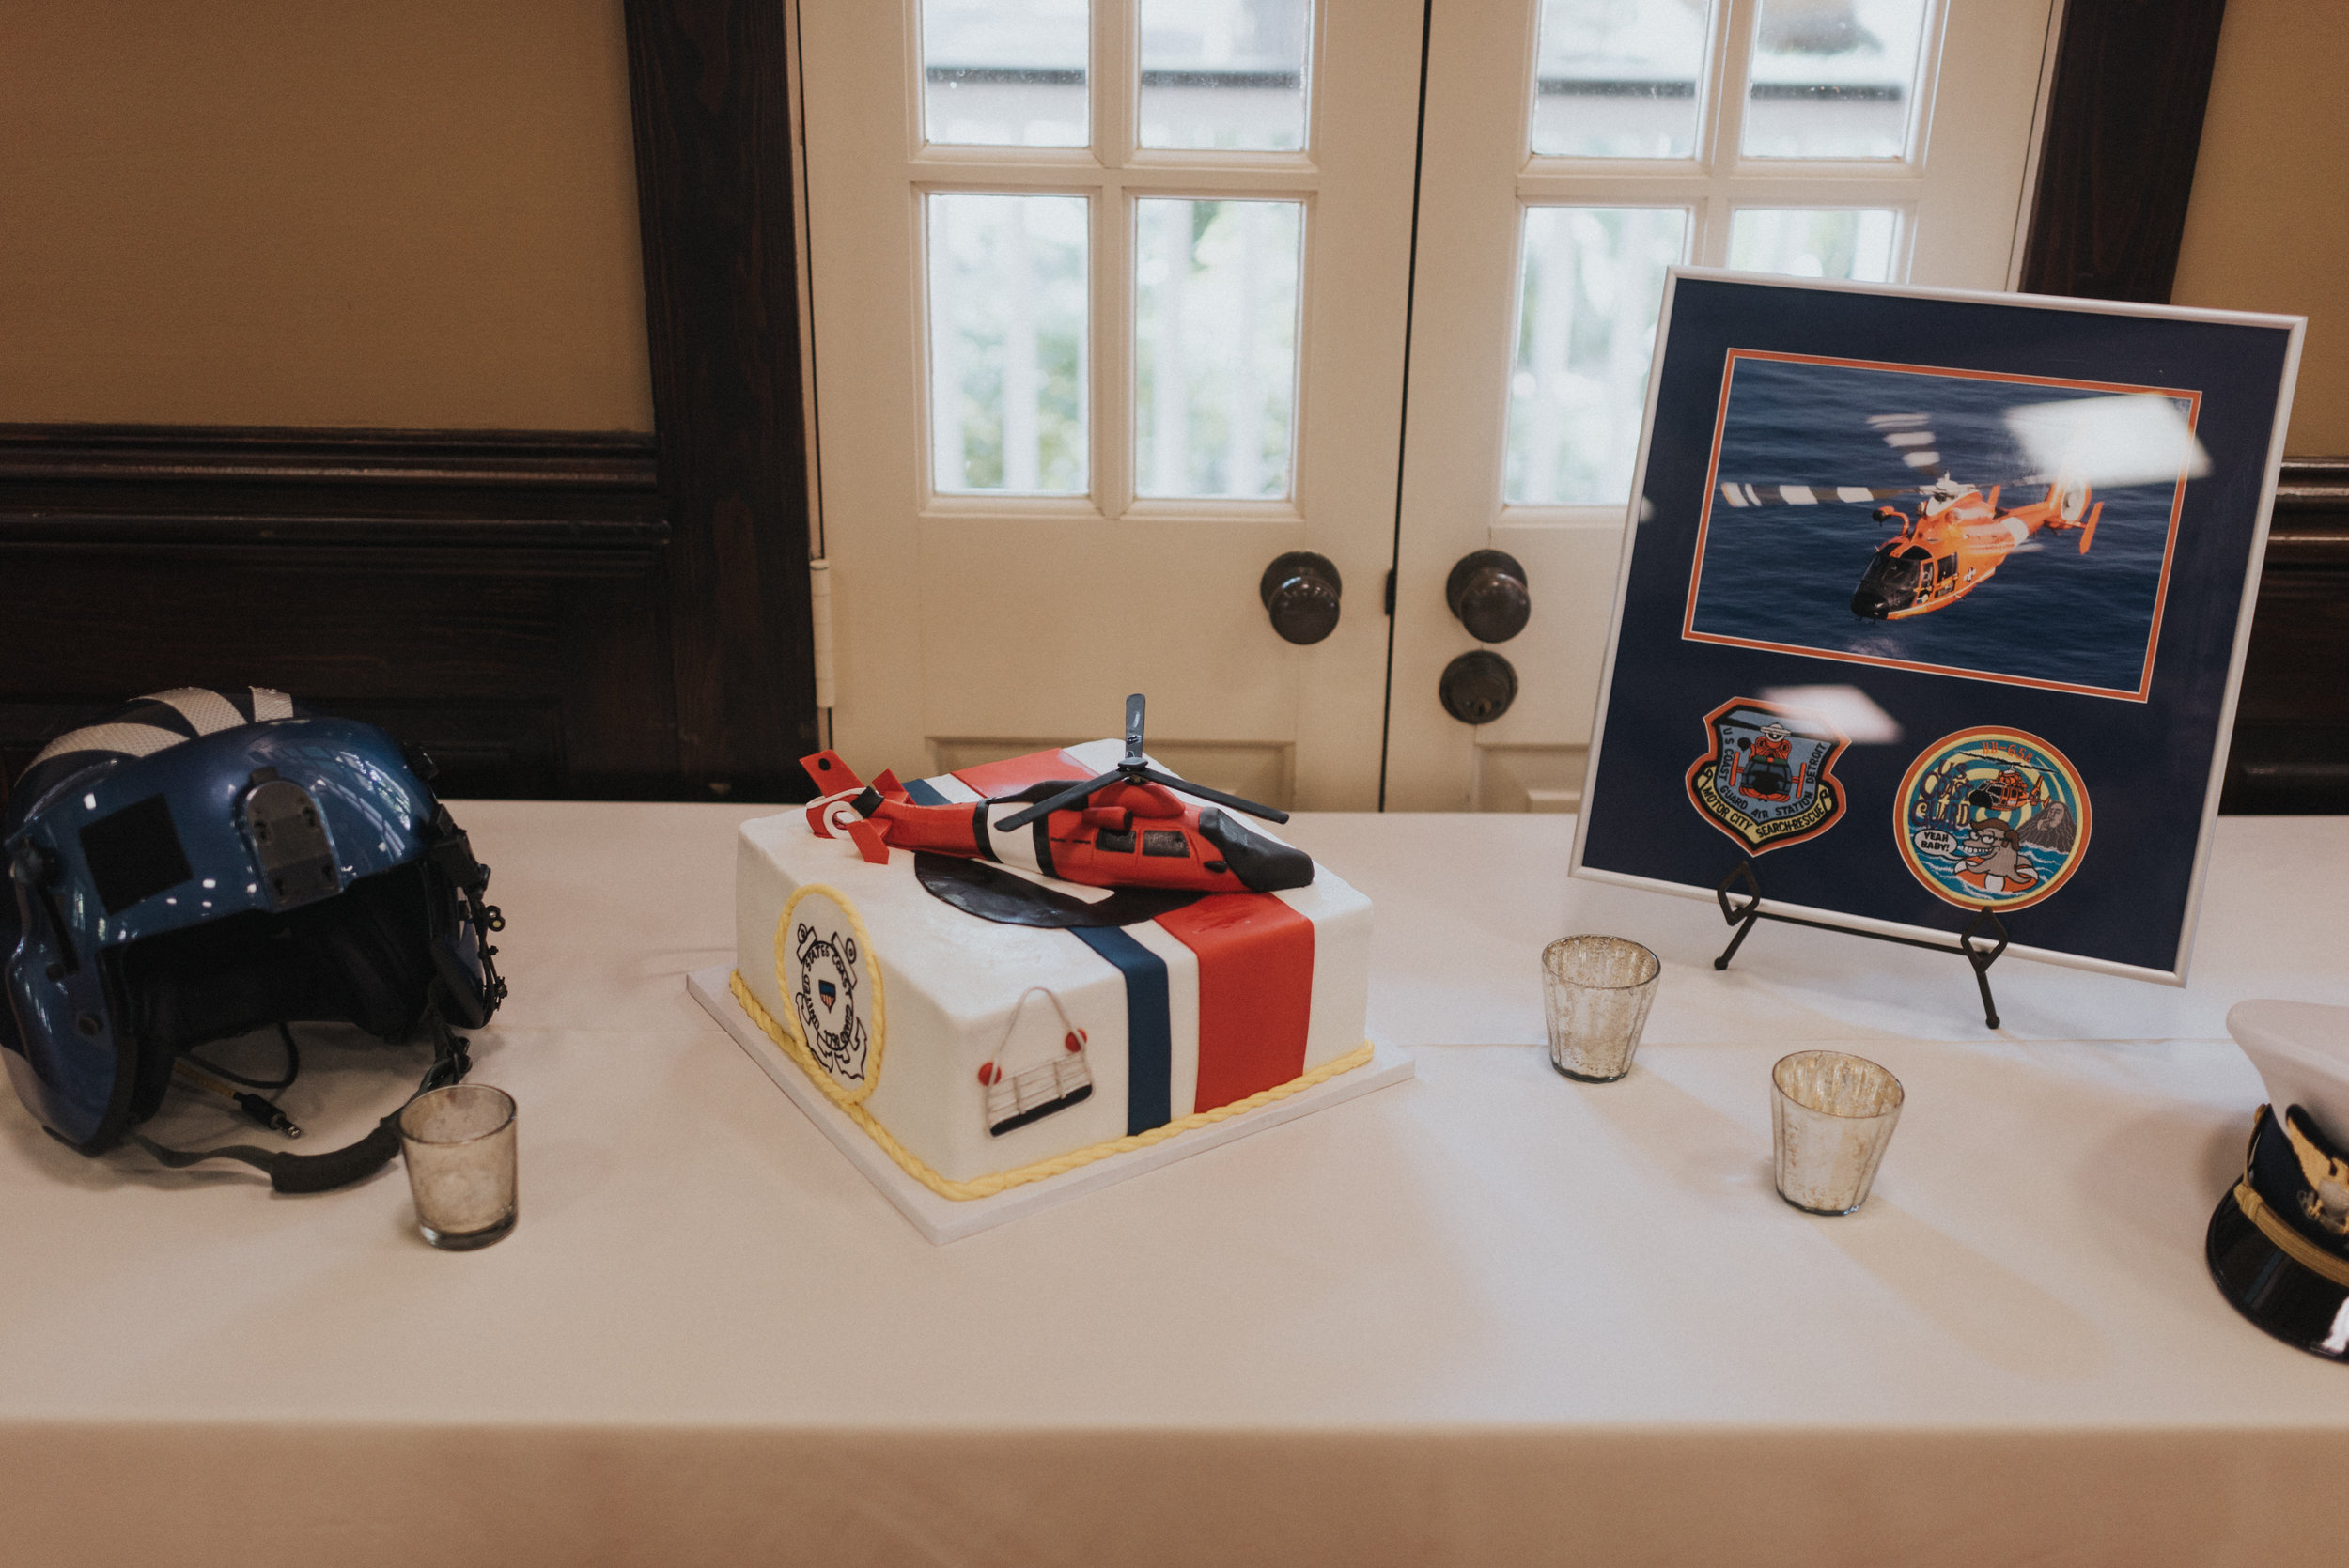 Southern Fete, Southern Wedding, Helicopter Cake, Sky's the Limit, Groom's cake